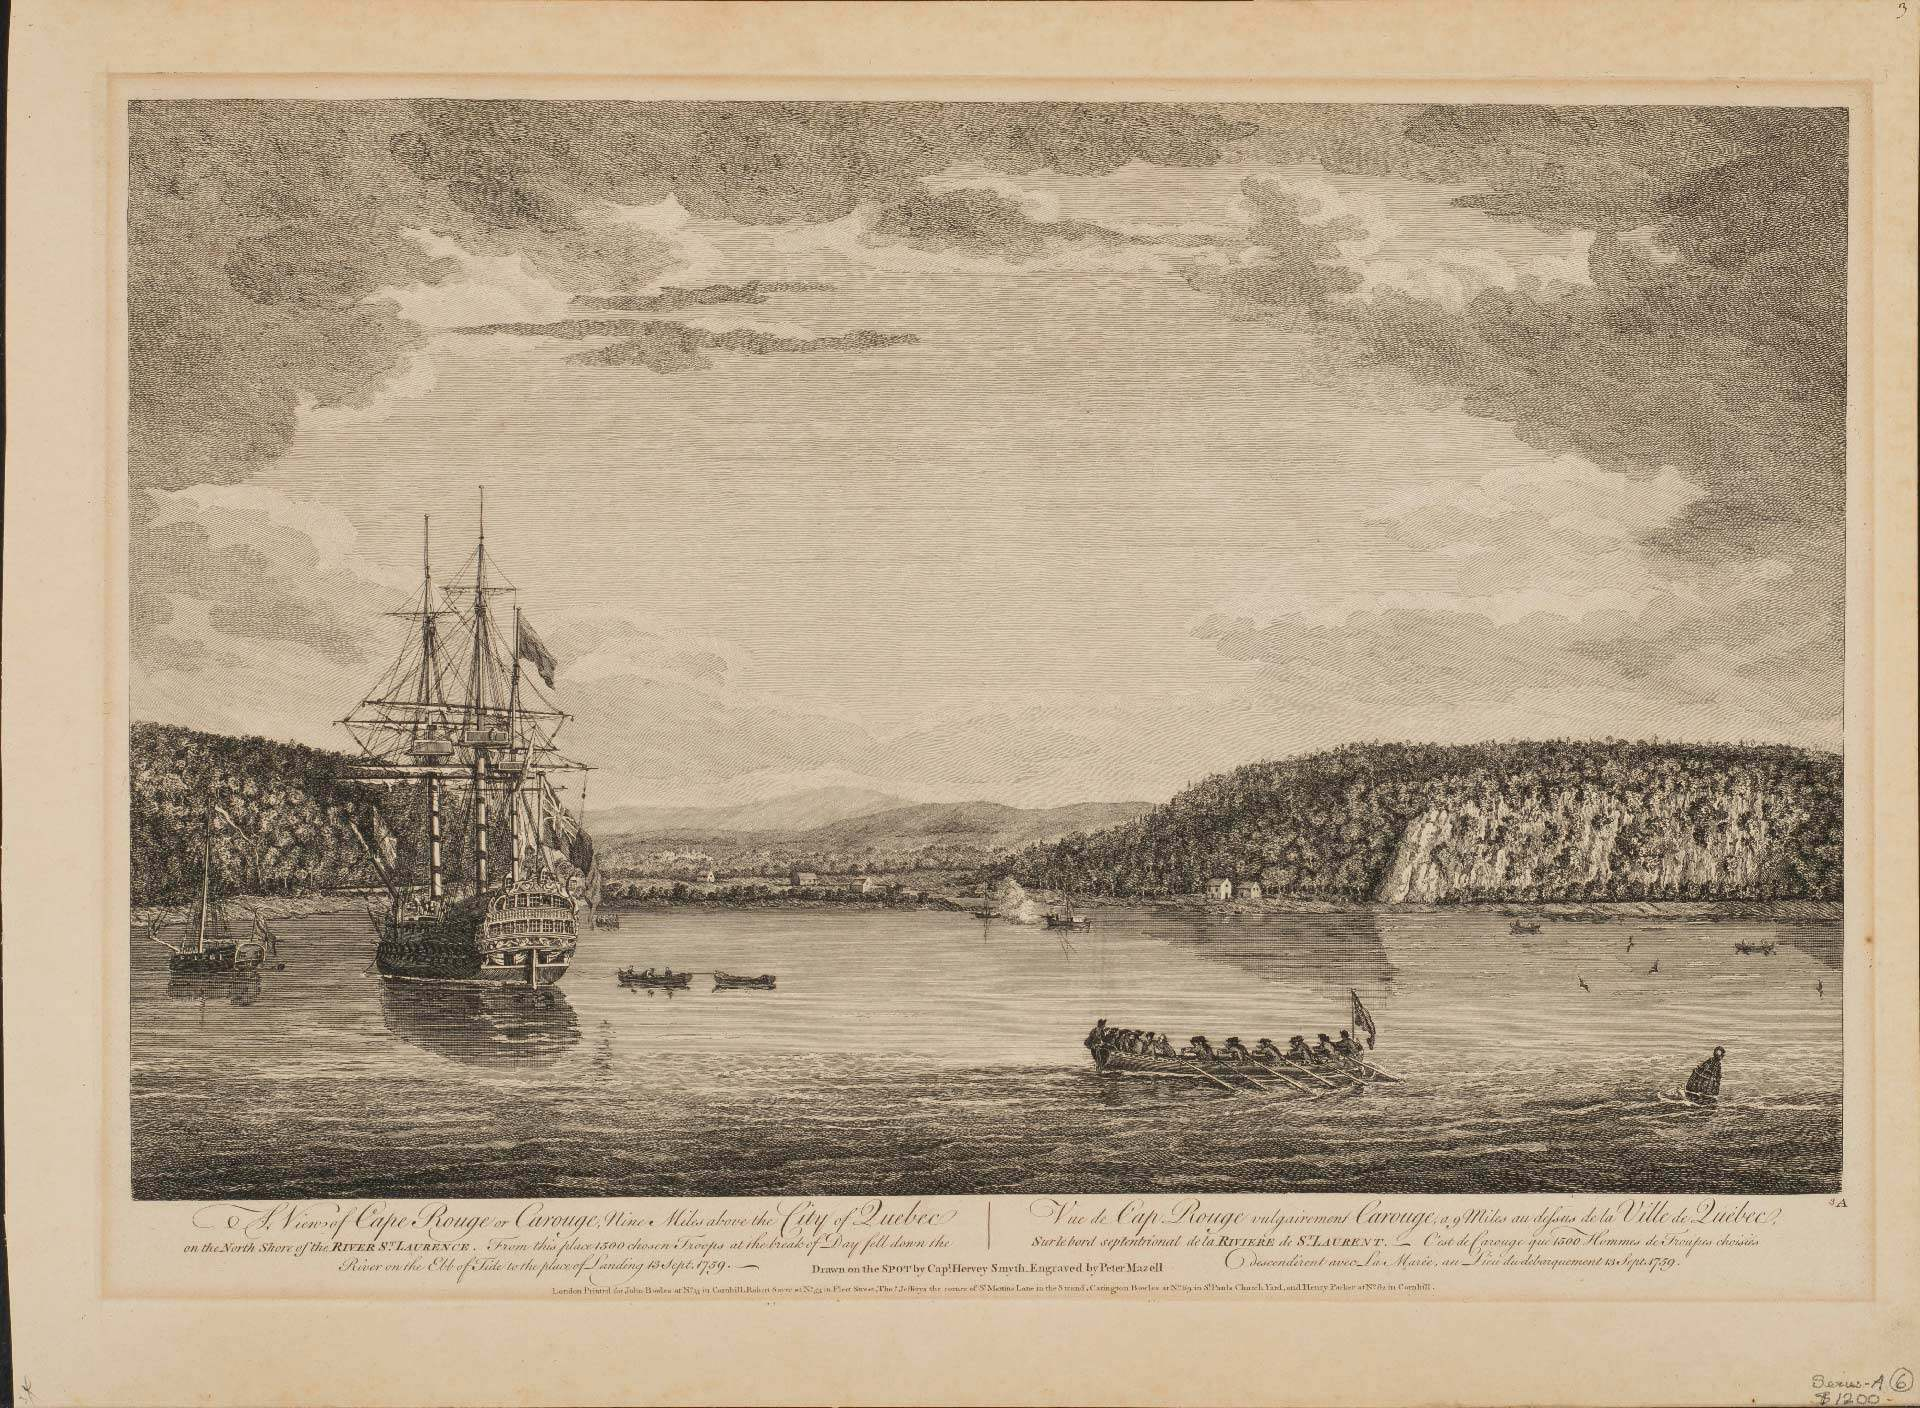 A View of Cape Rouge or Carouge, Nine Miles Above the City of Quebec on the North Shore of the River St. Laurence